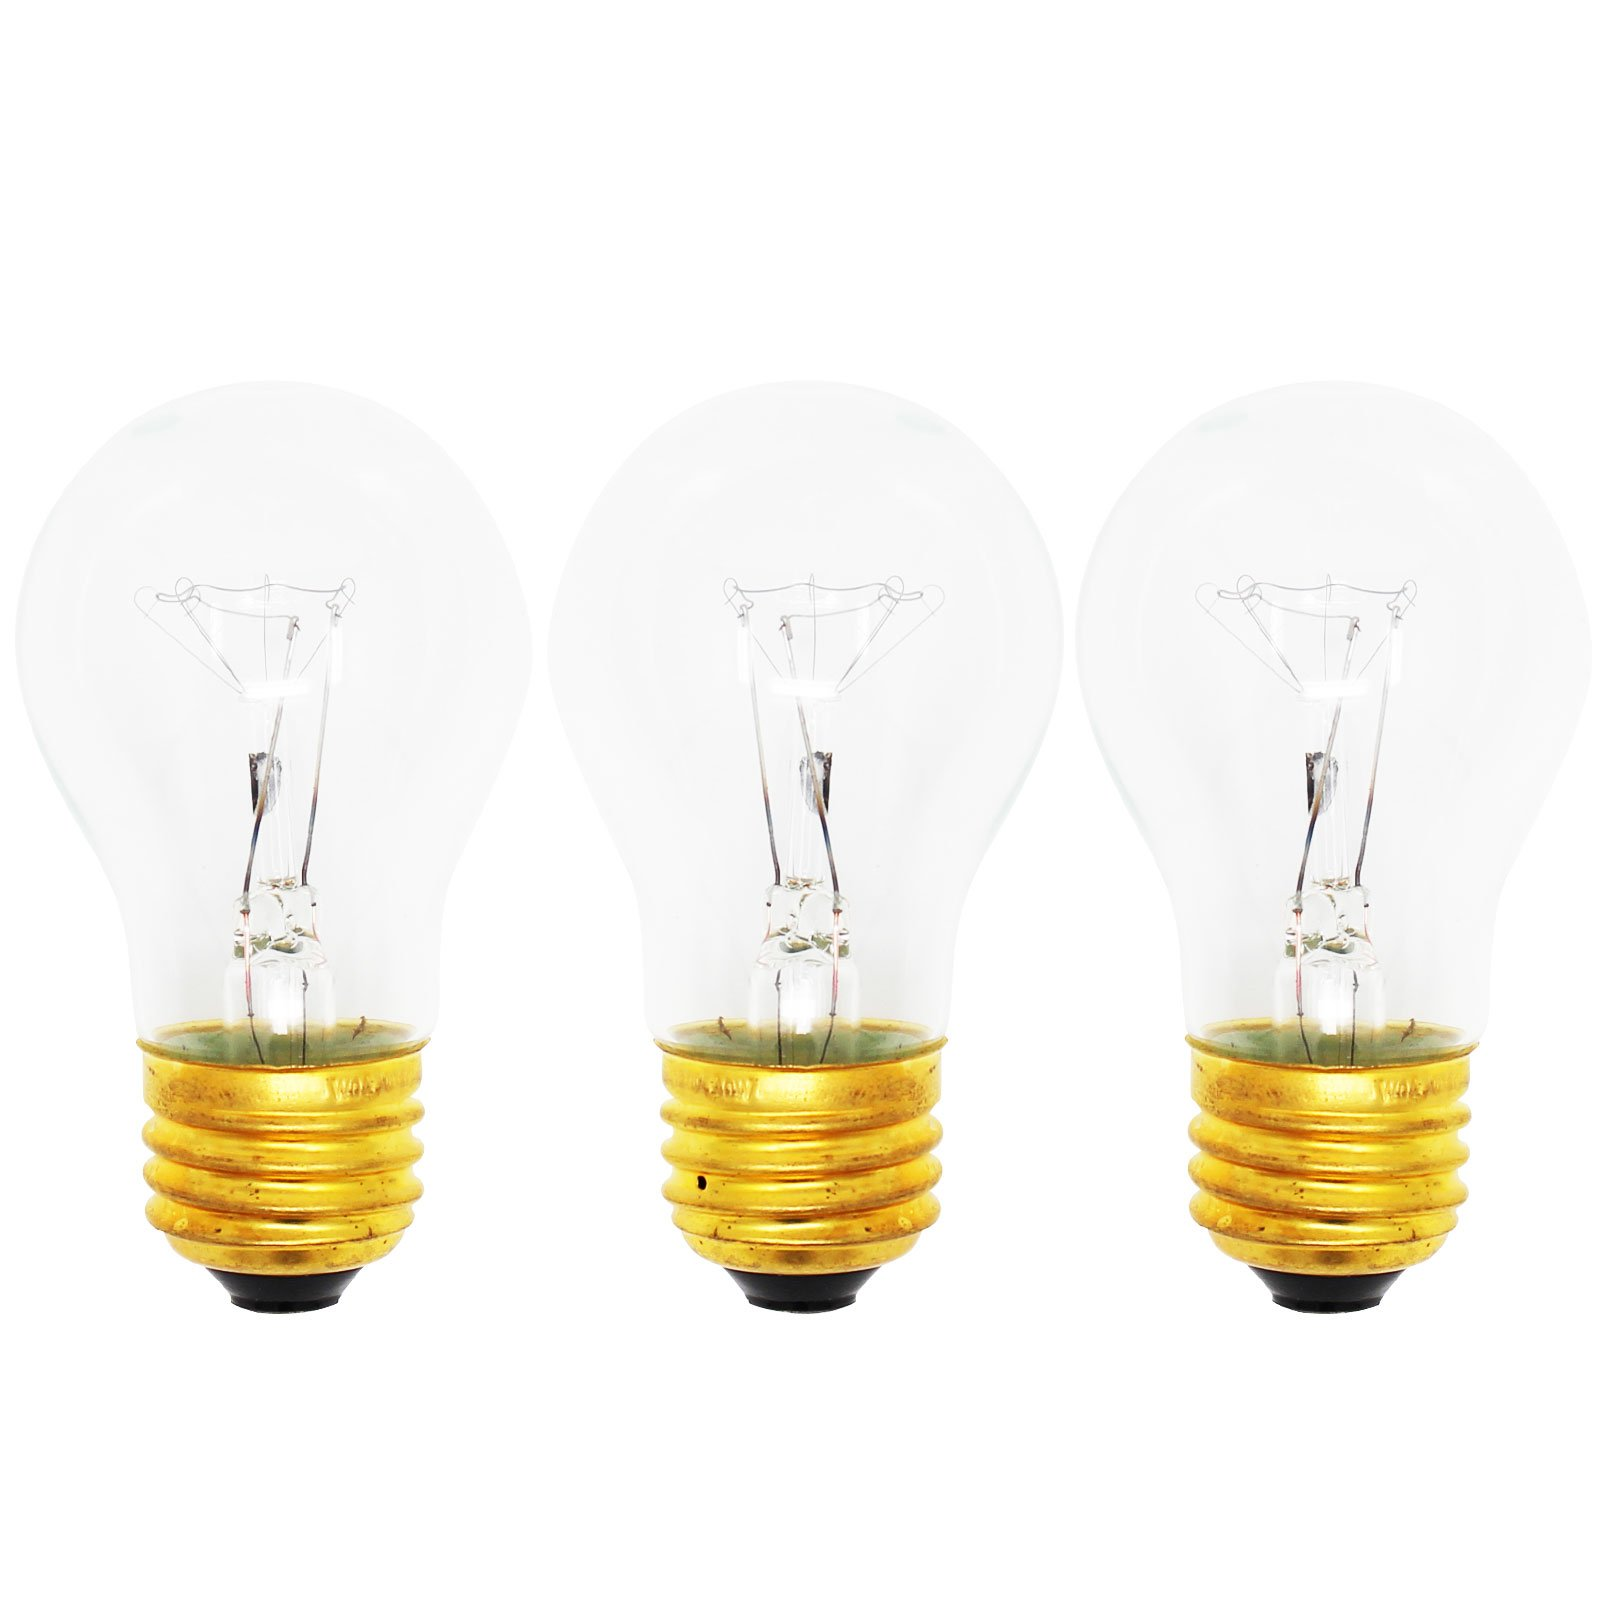 3-Pack Replacement Light Bulb for Amana AOGD2750SS - Compatible Amana 8009 Light Bulb